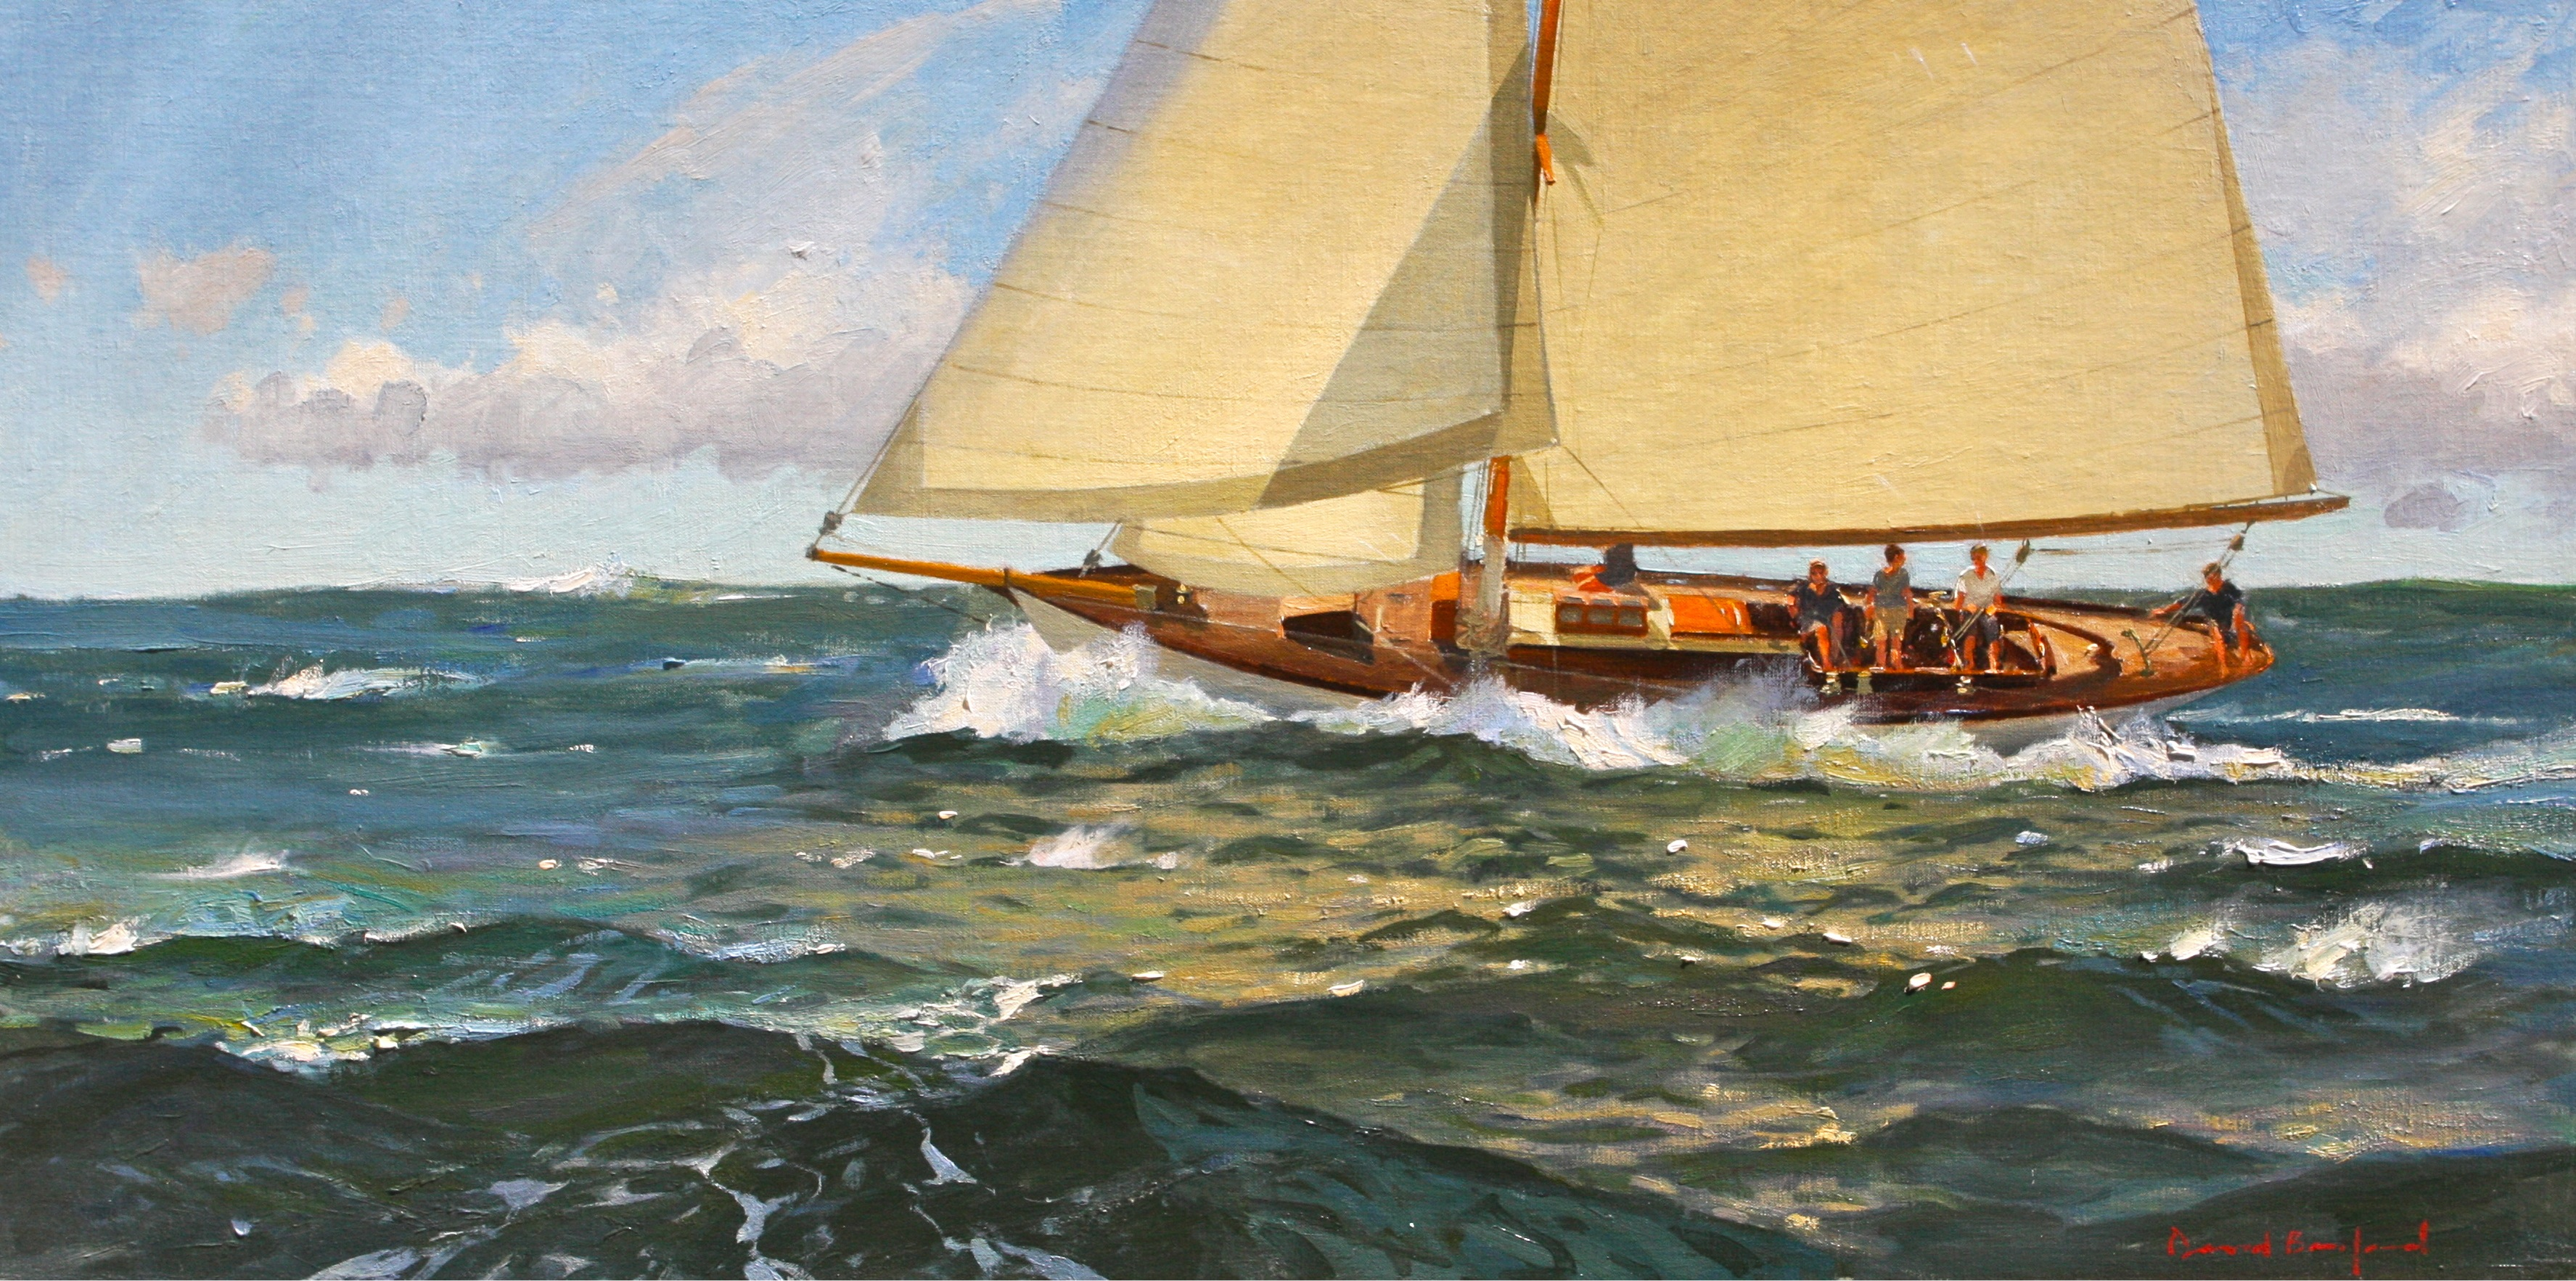 contemporary american marine art 17th national exhibition of the